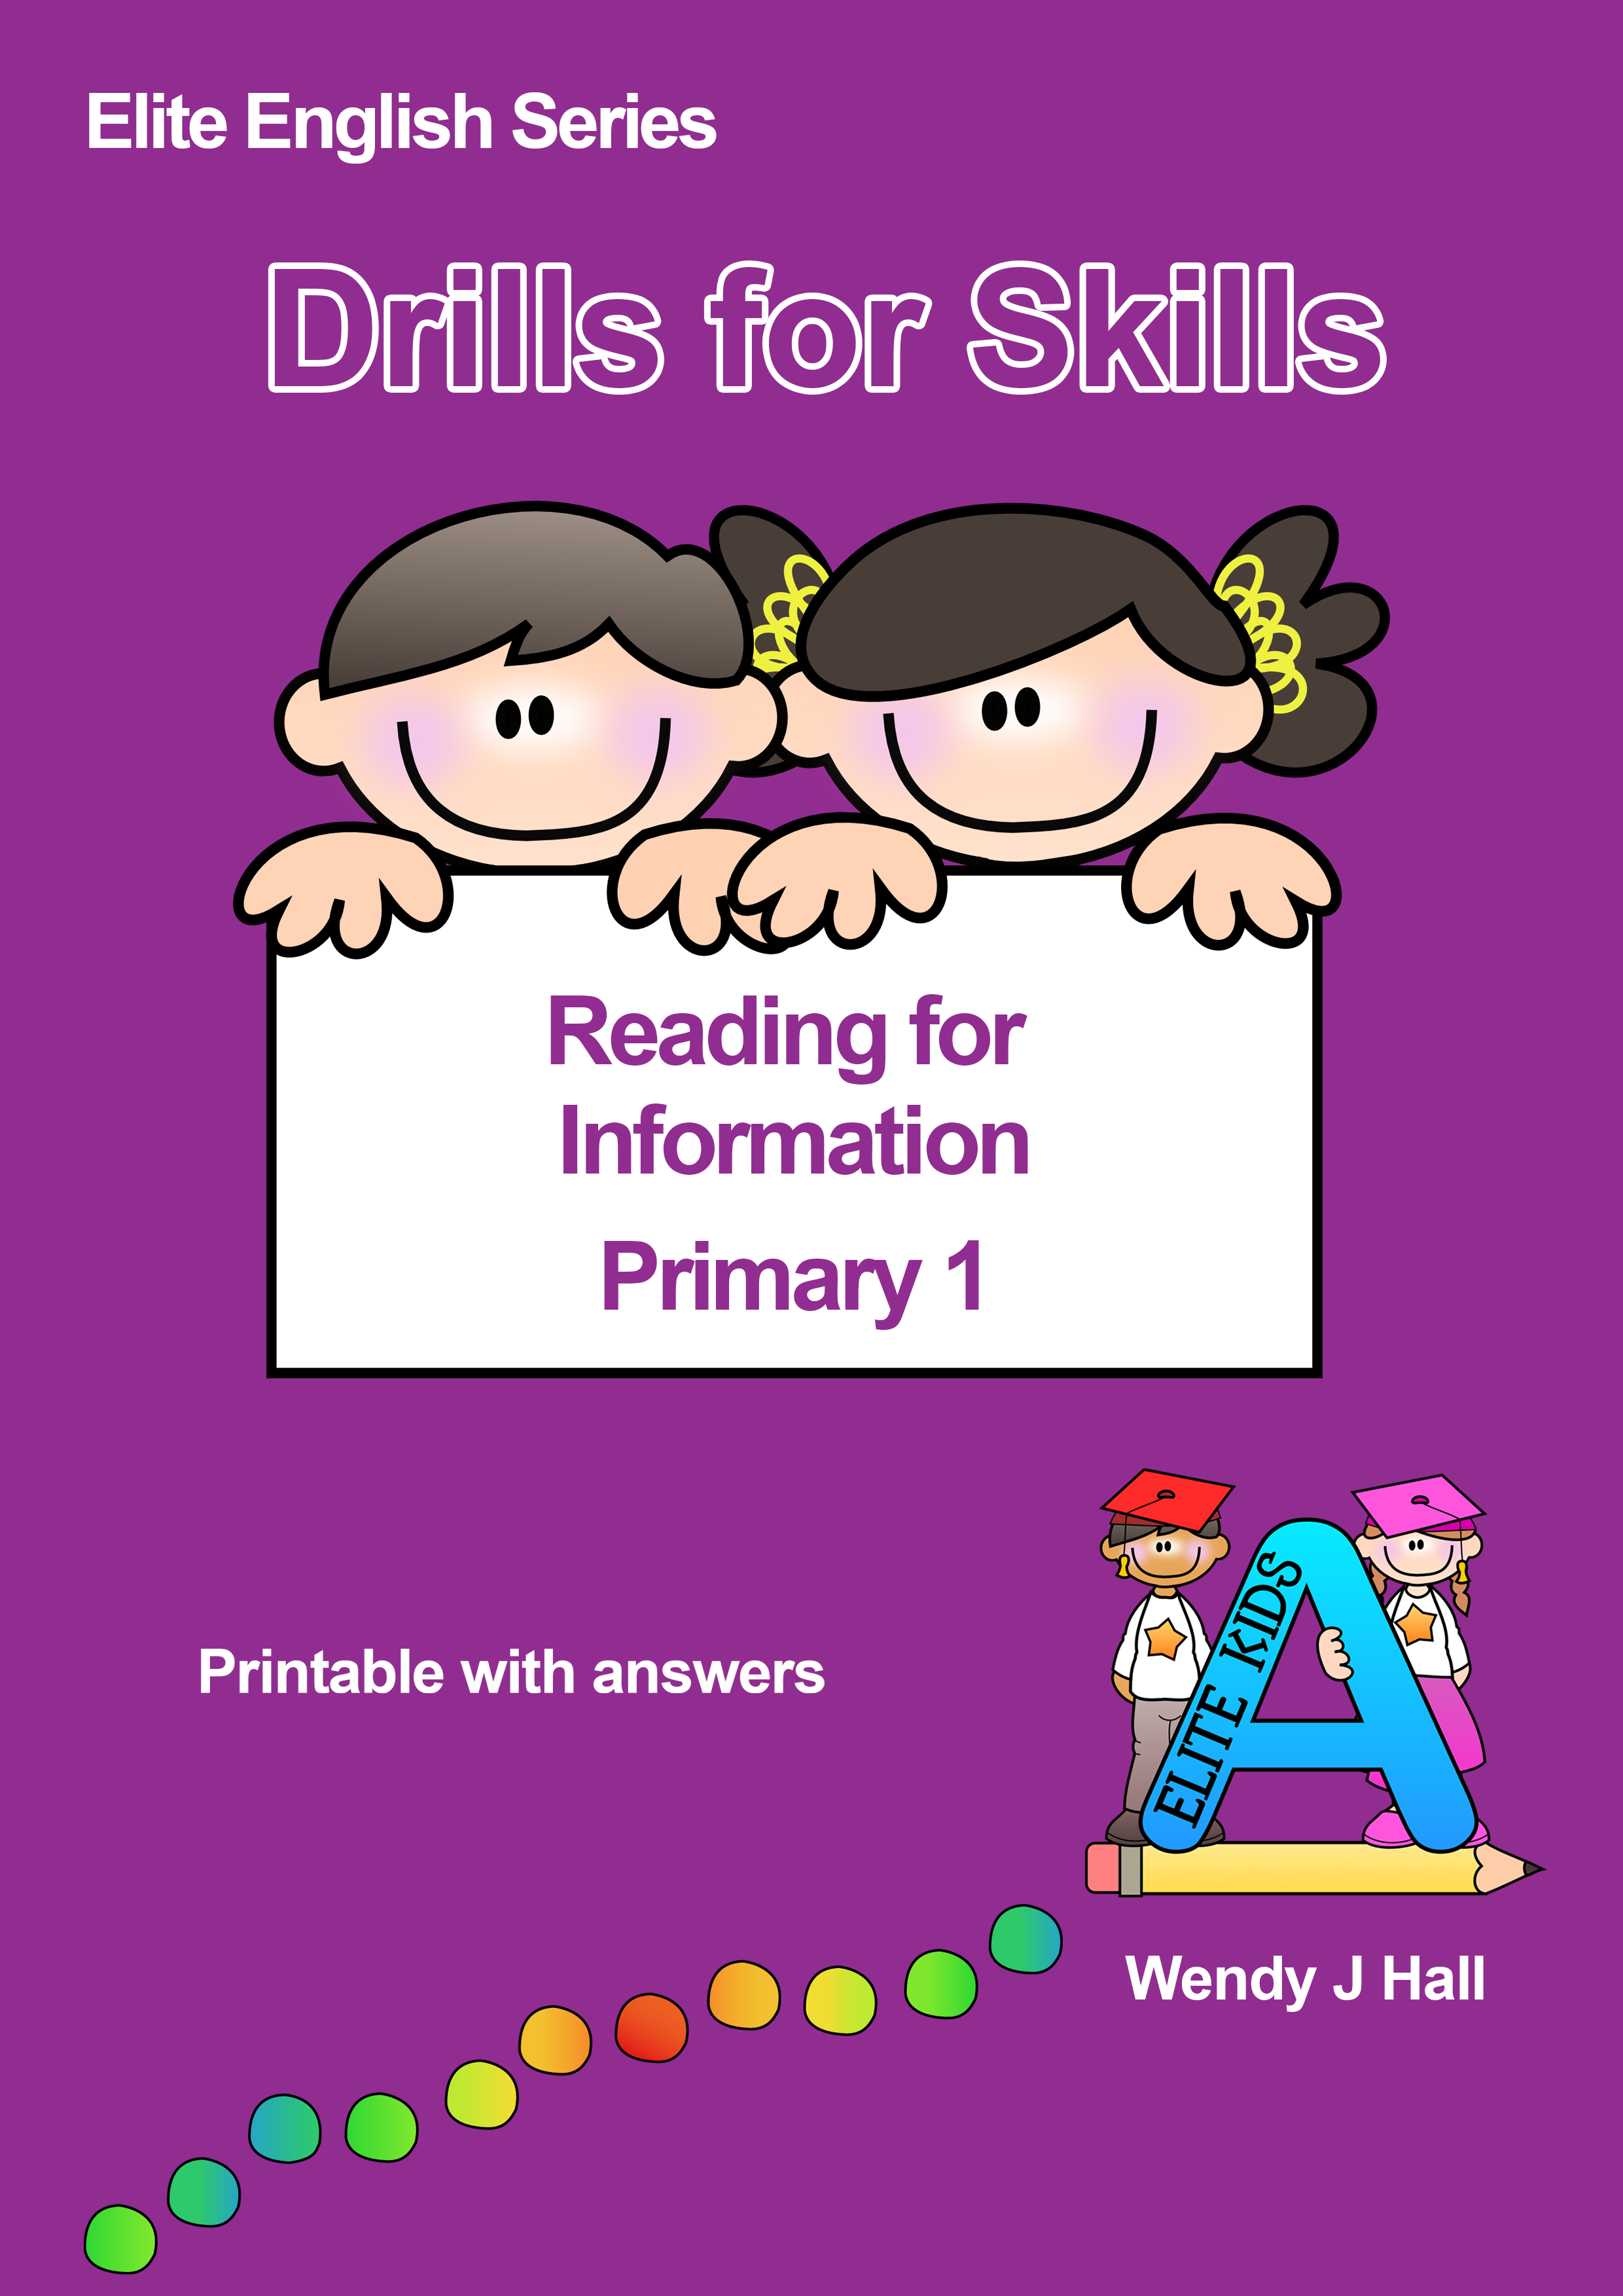 Drills for Skills - Reading for Information | Primary 1